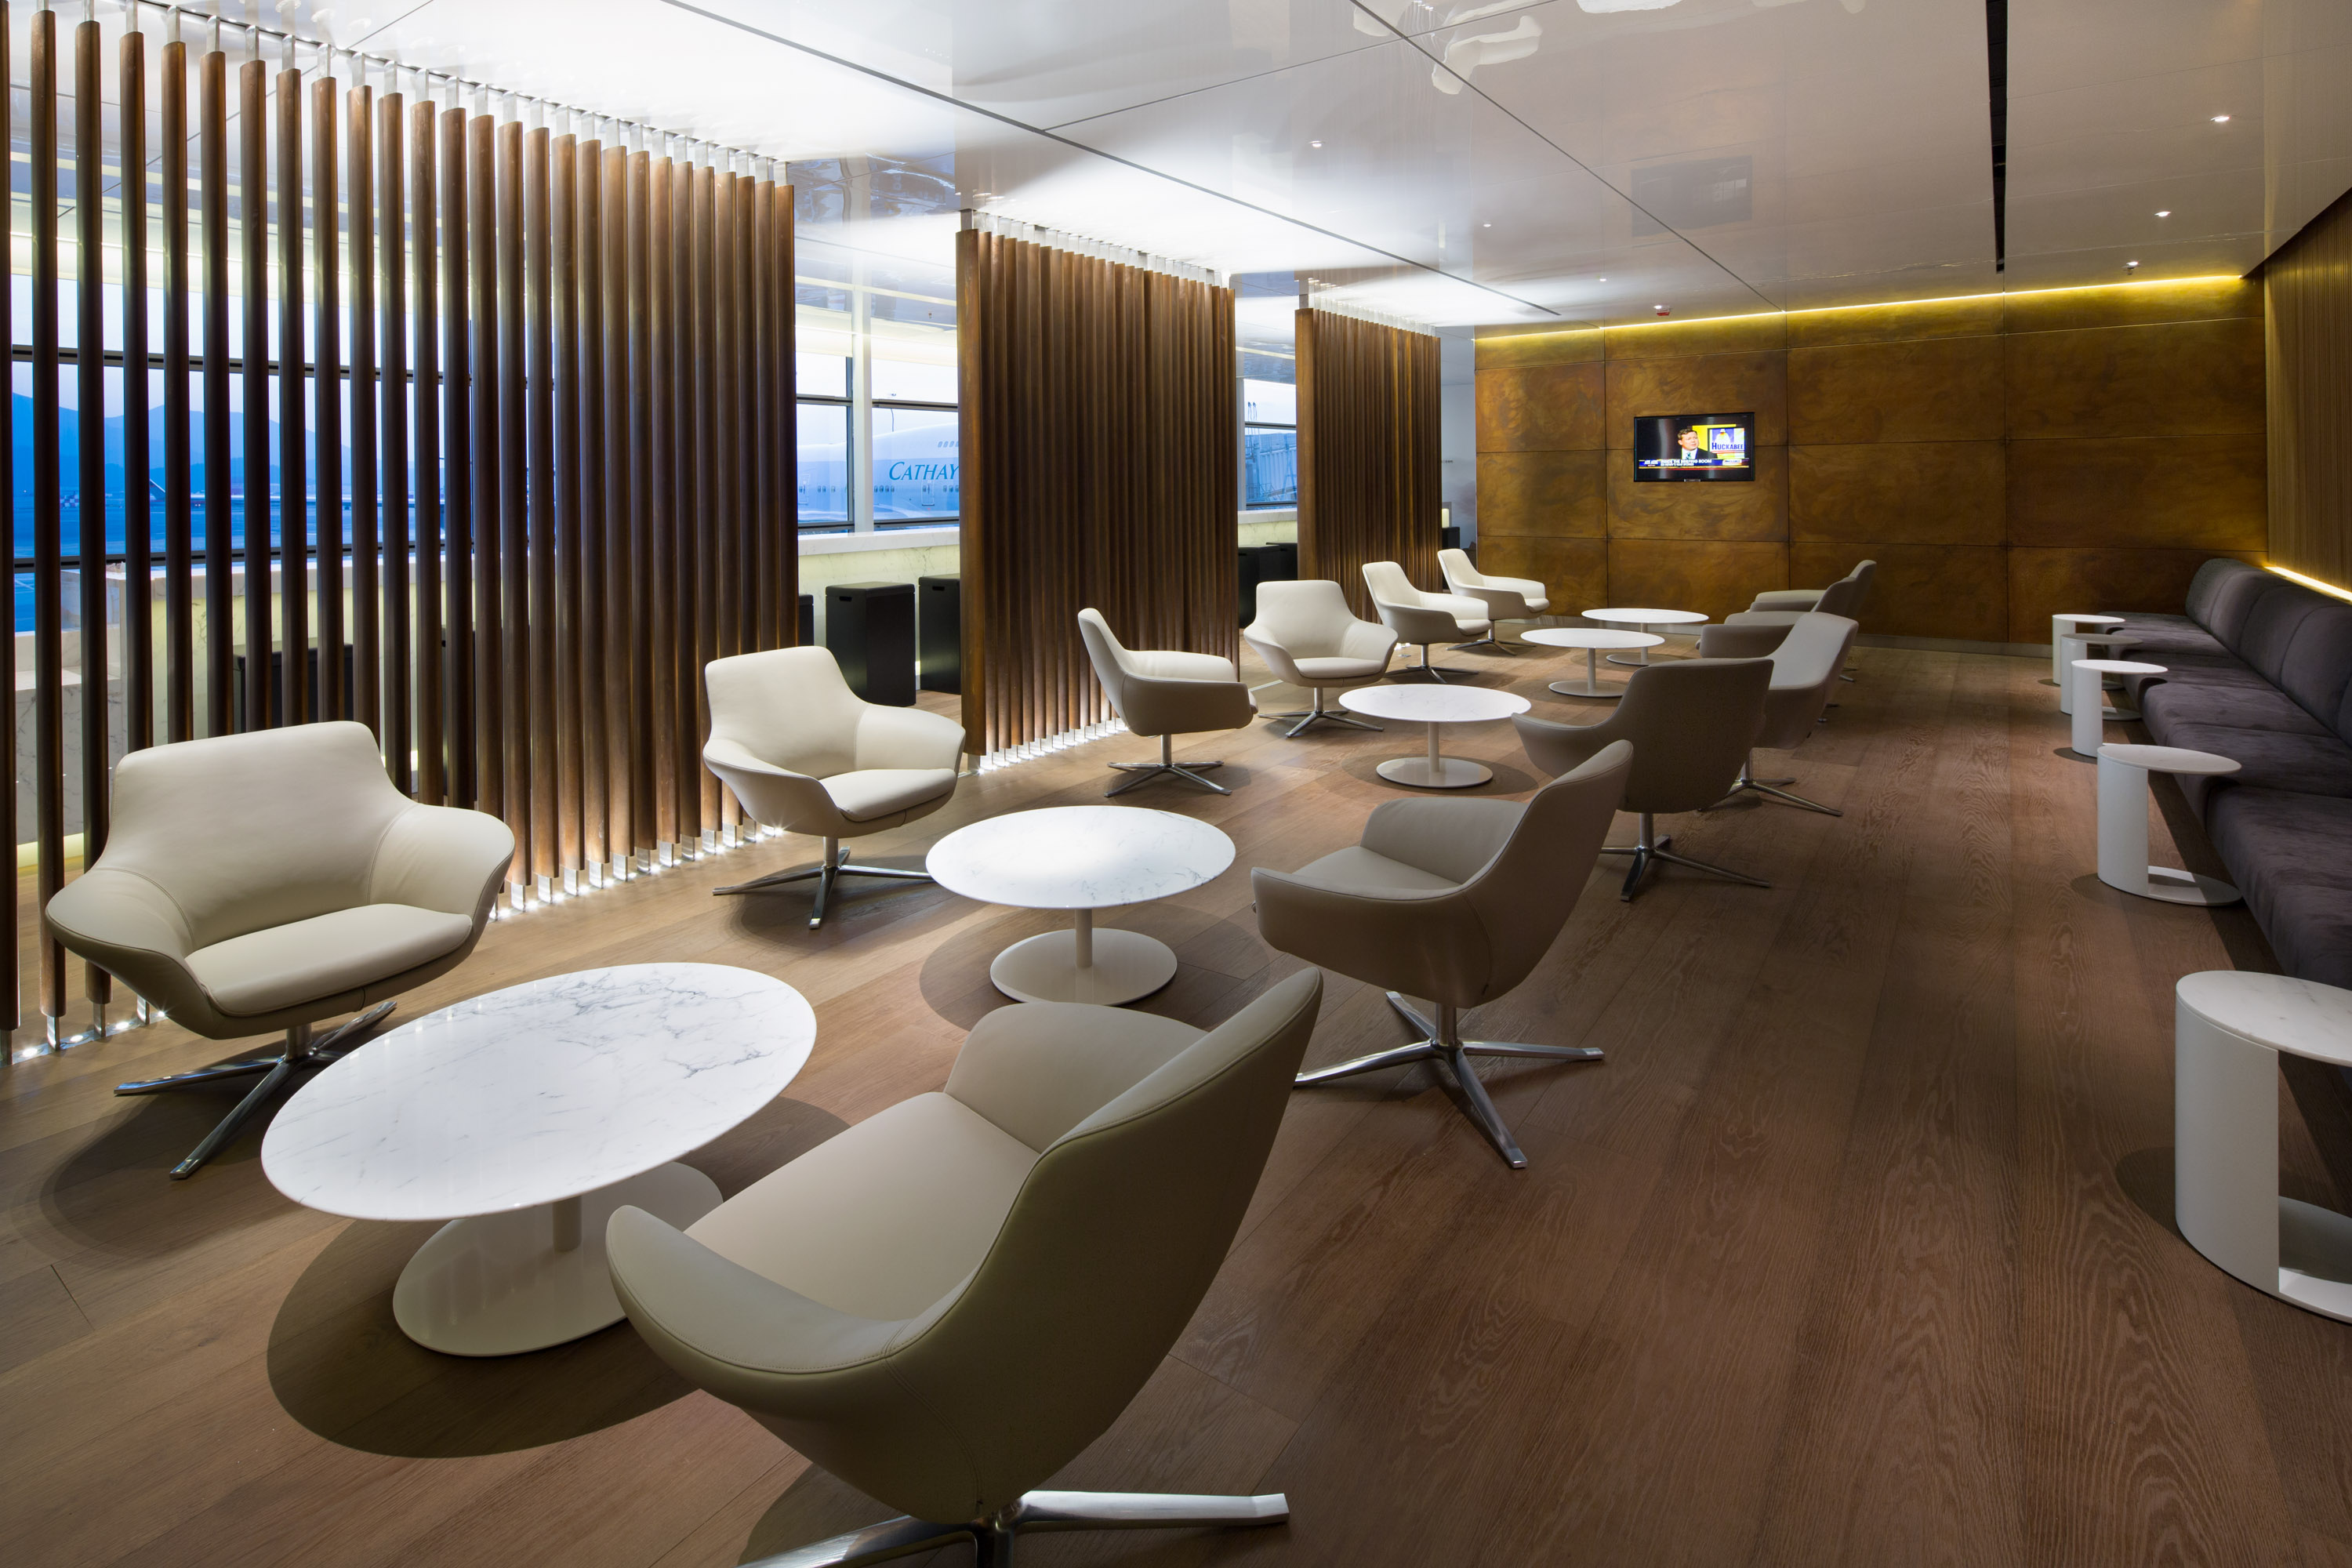 Thedesignair s top 10 airport lounges 2015 thedesignair for Lounge pictures designs